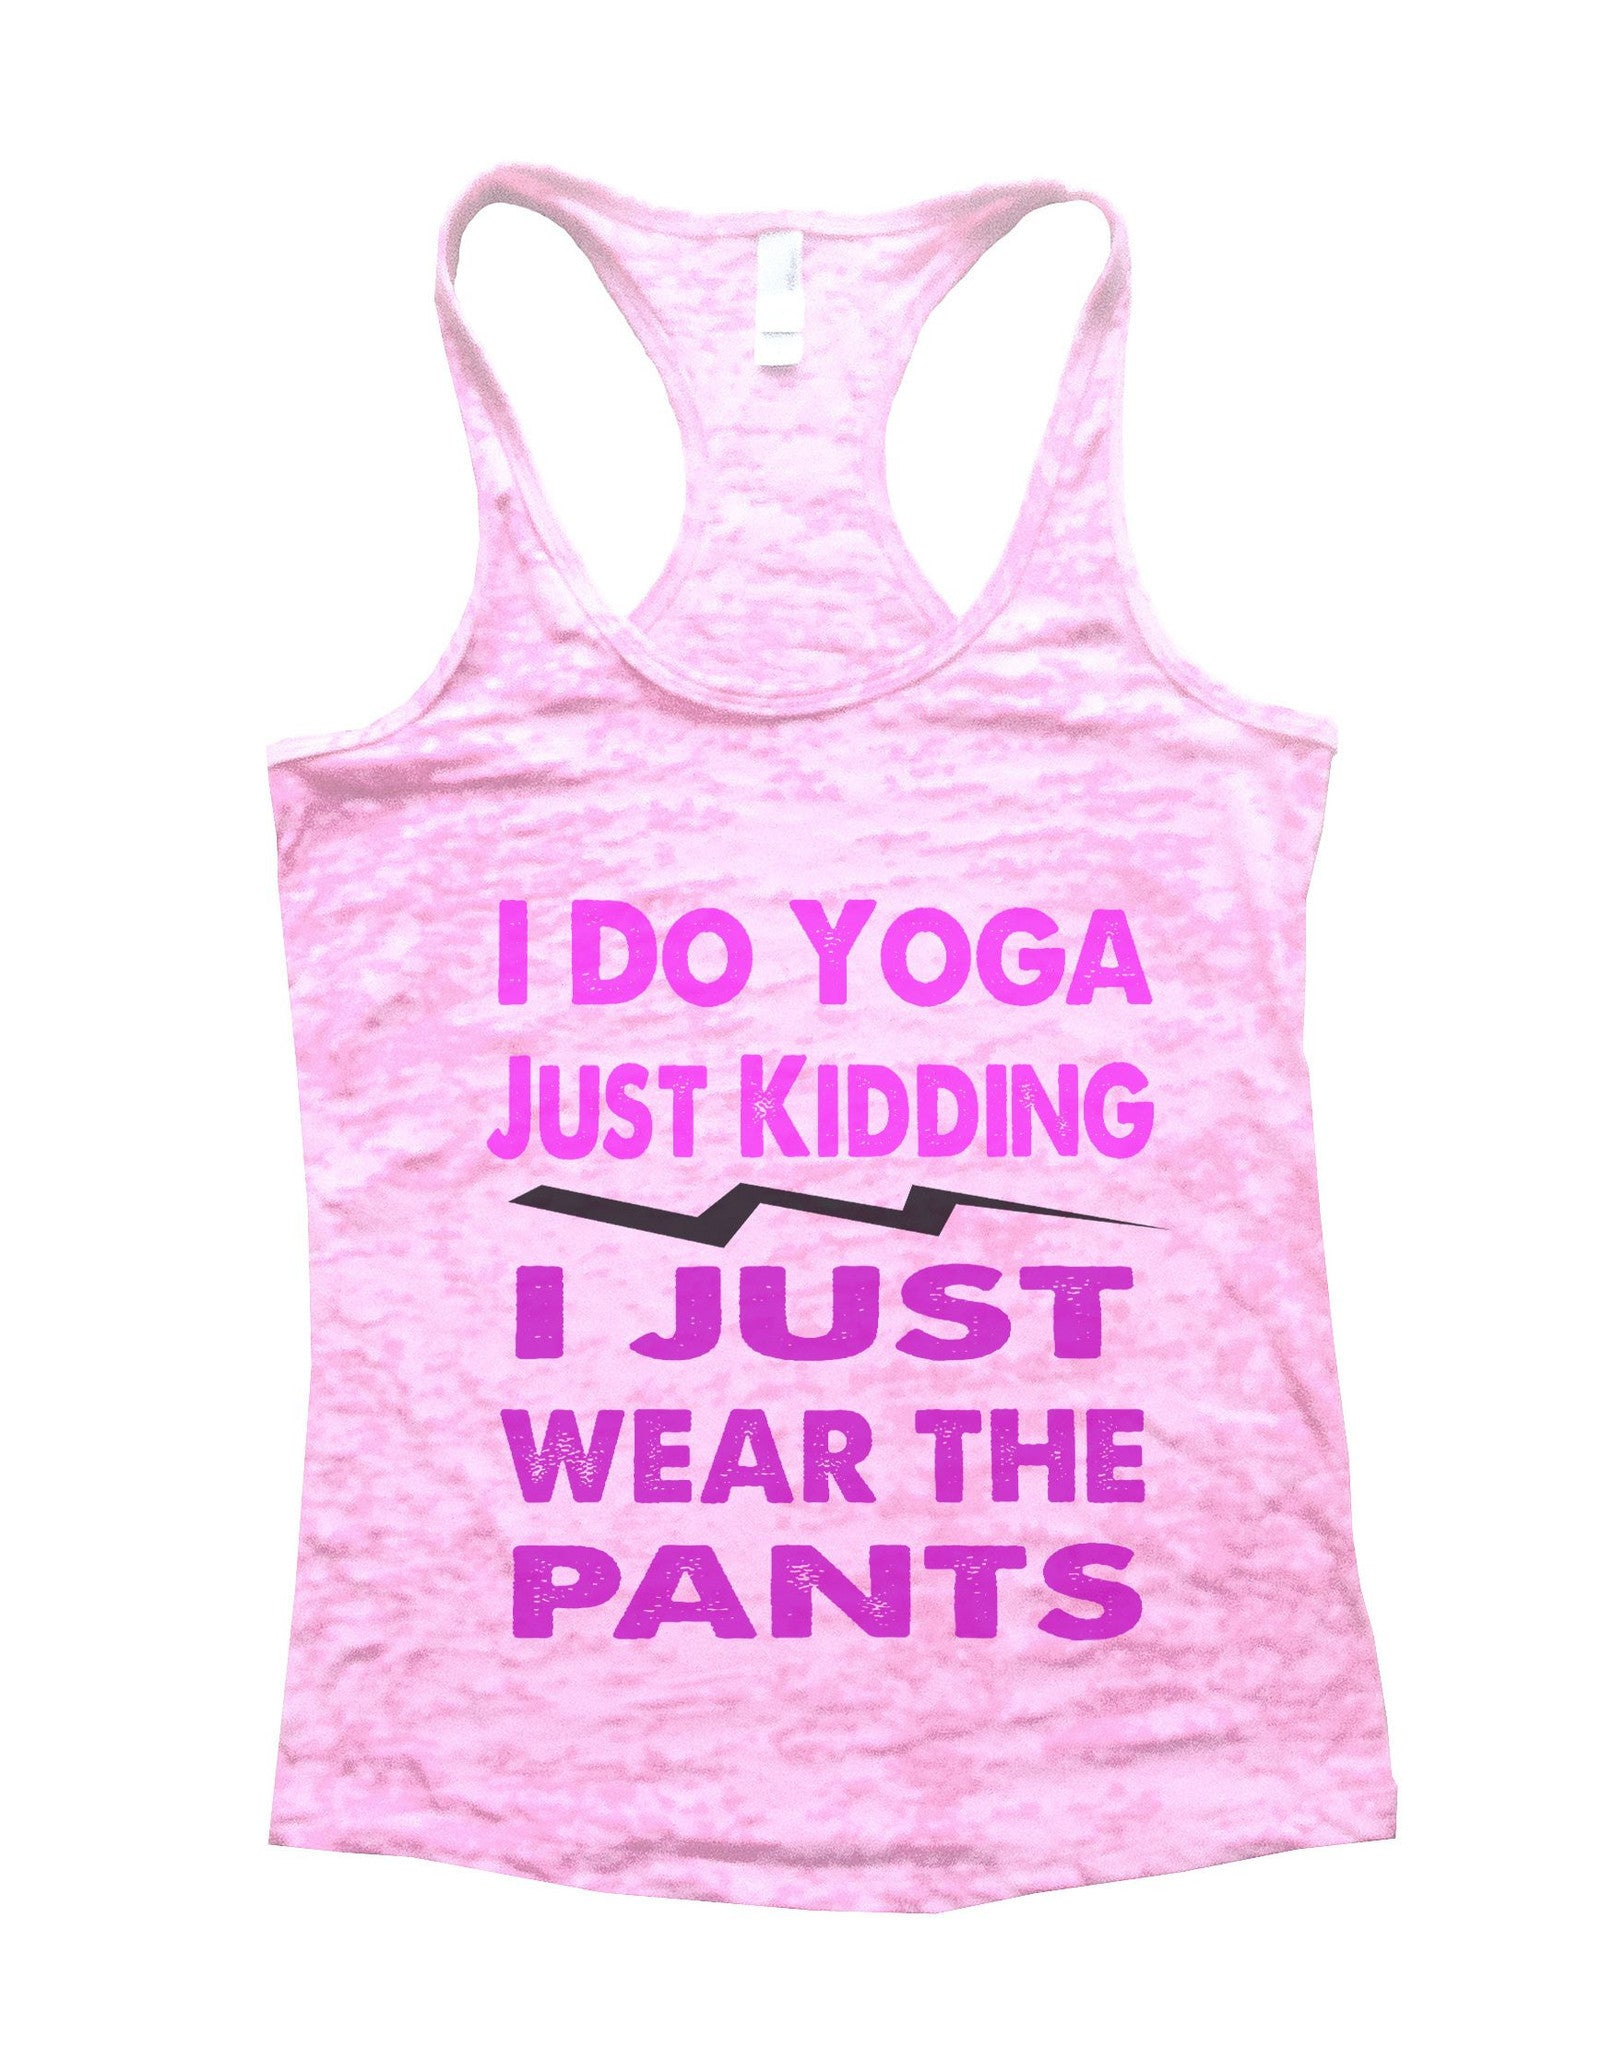 I Do Yoga Just Kidding I Just Wear The Pants Burnout Tank Top By BurnoutTankTops.com - 633 - Funny Shirts Tank Tops Burnouts and Triblends  - 1